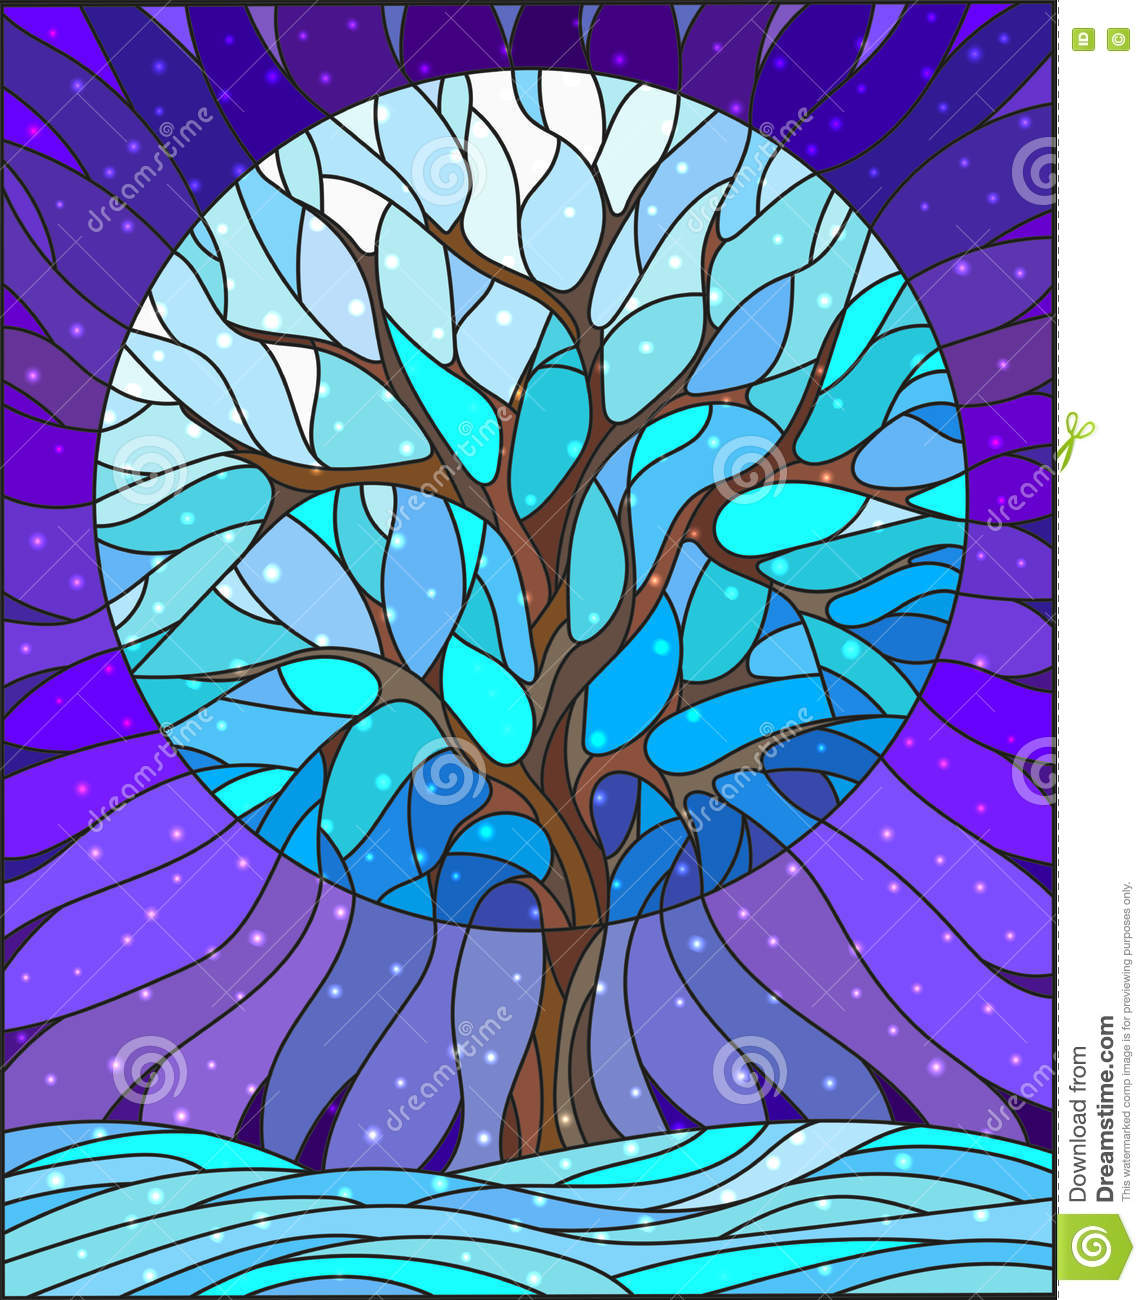 Stained Glass Illustration With Winter Tree On Sky